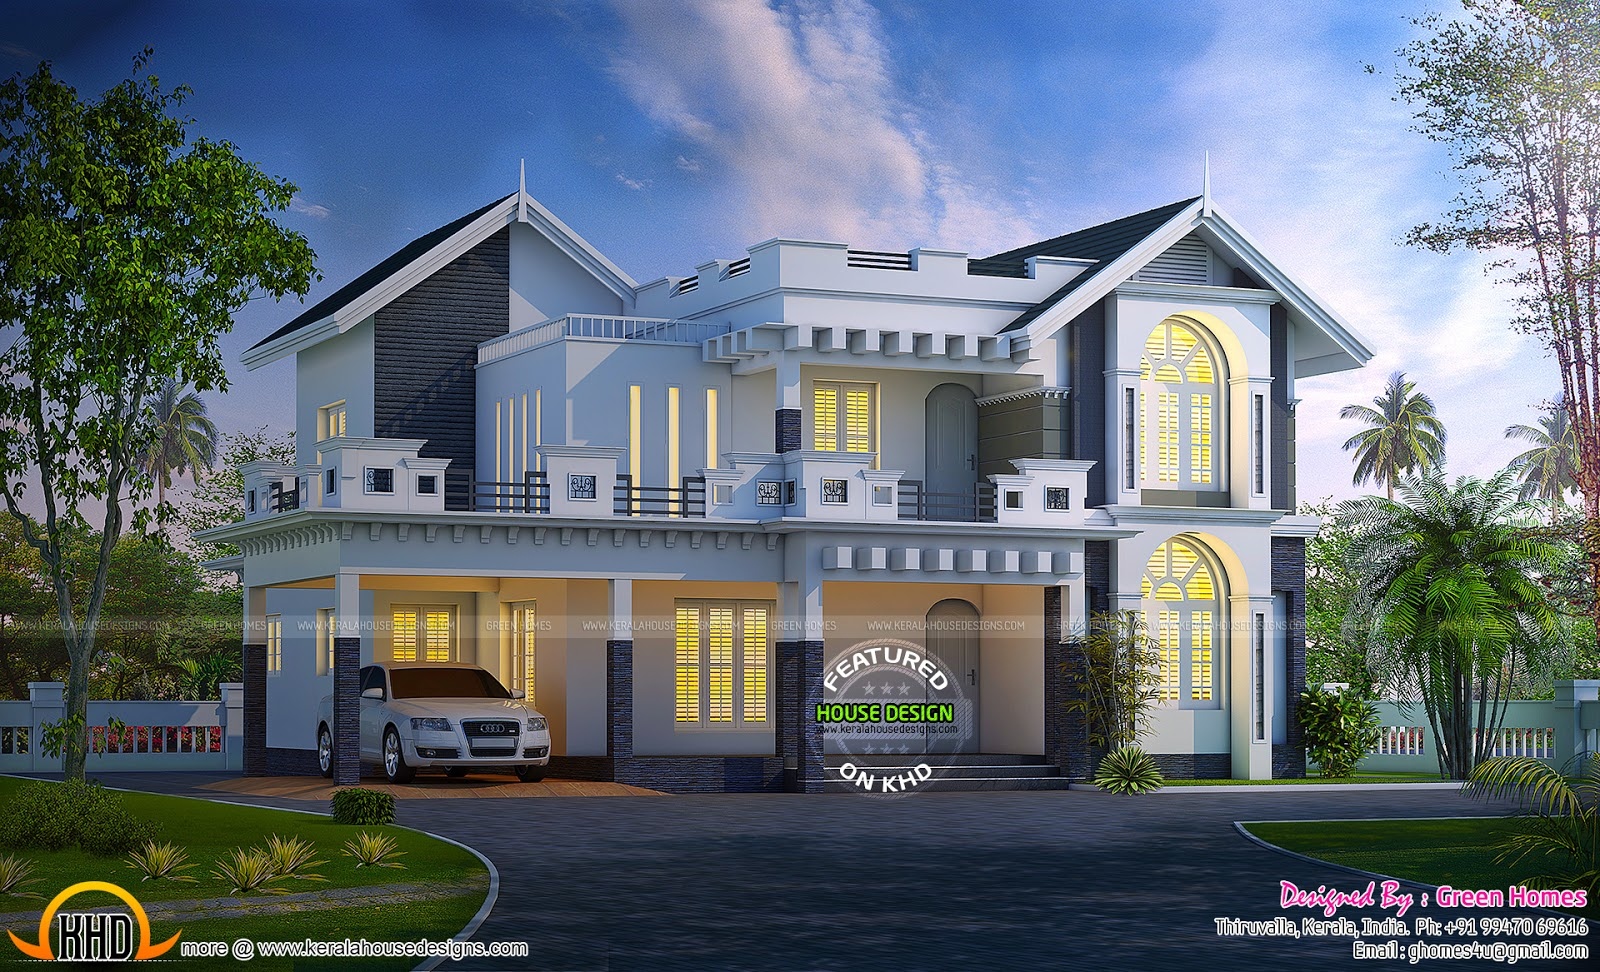 New kerala house plans for june 2015 keralahousedesigns for New plan house